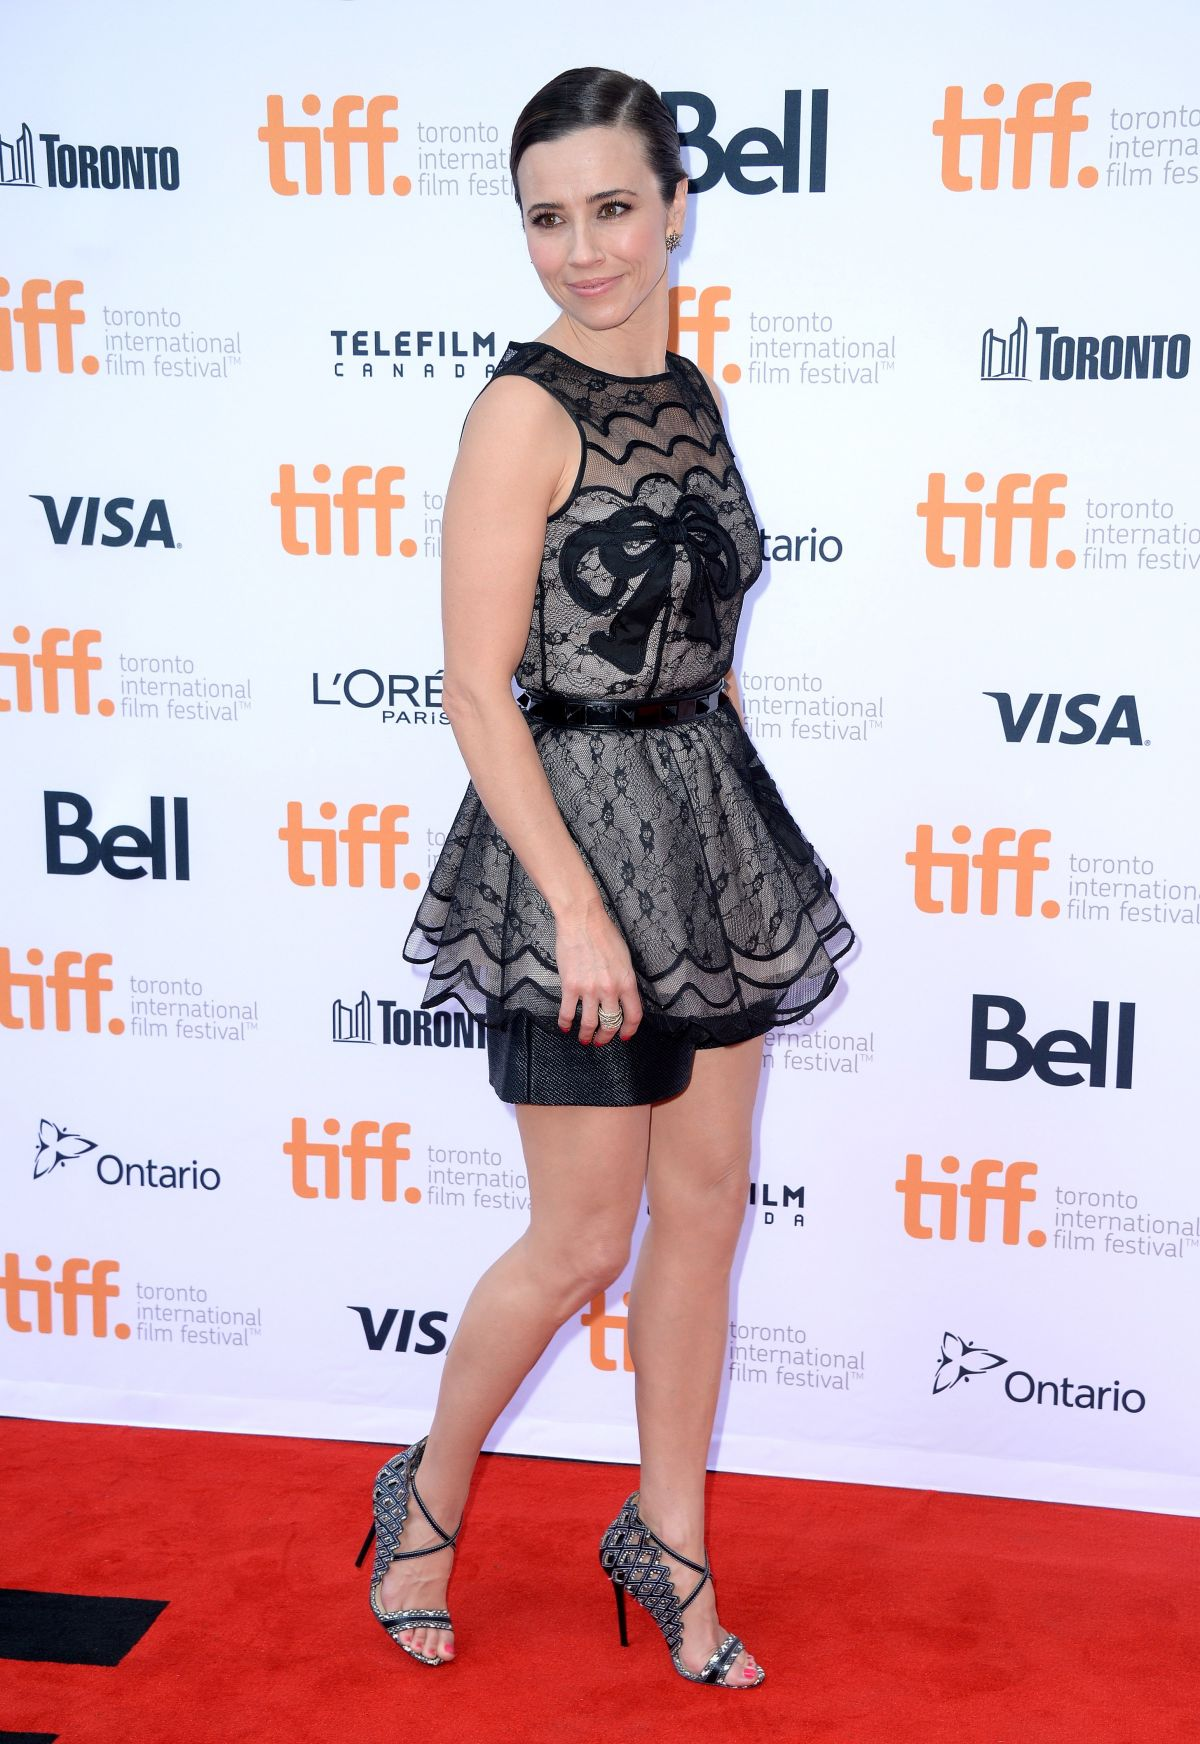 linda-cardellini-at-welcome-to-me-premiere-in-toronto_6